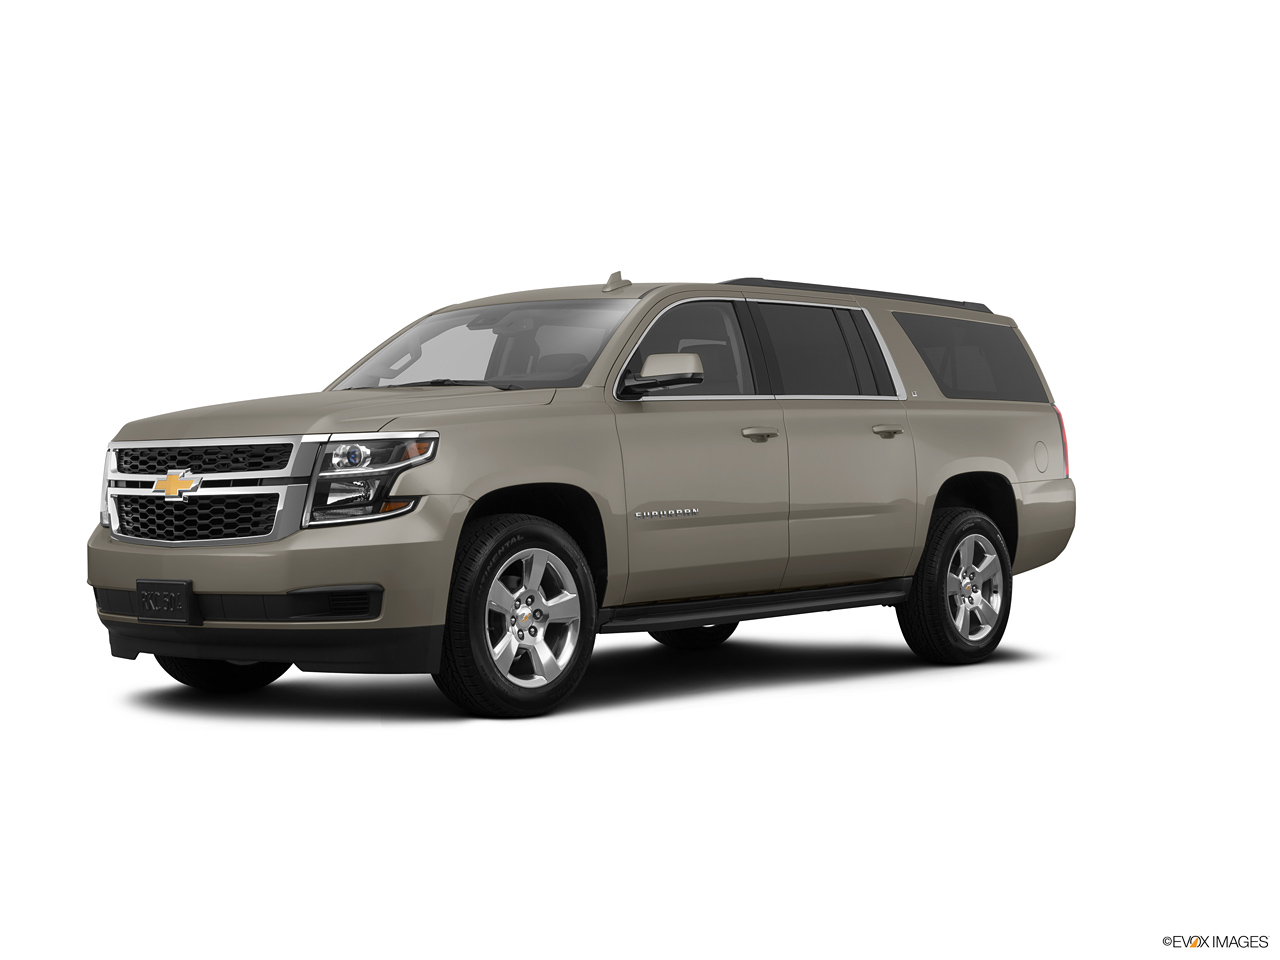 chevrolet suburban 2017 5 3l lt 4wd in kuwait new car prices specs reviews photos yallamotor. Black Bedroom Furniture Sets. Home Design Ideas